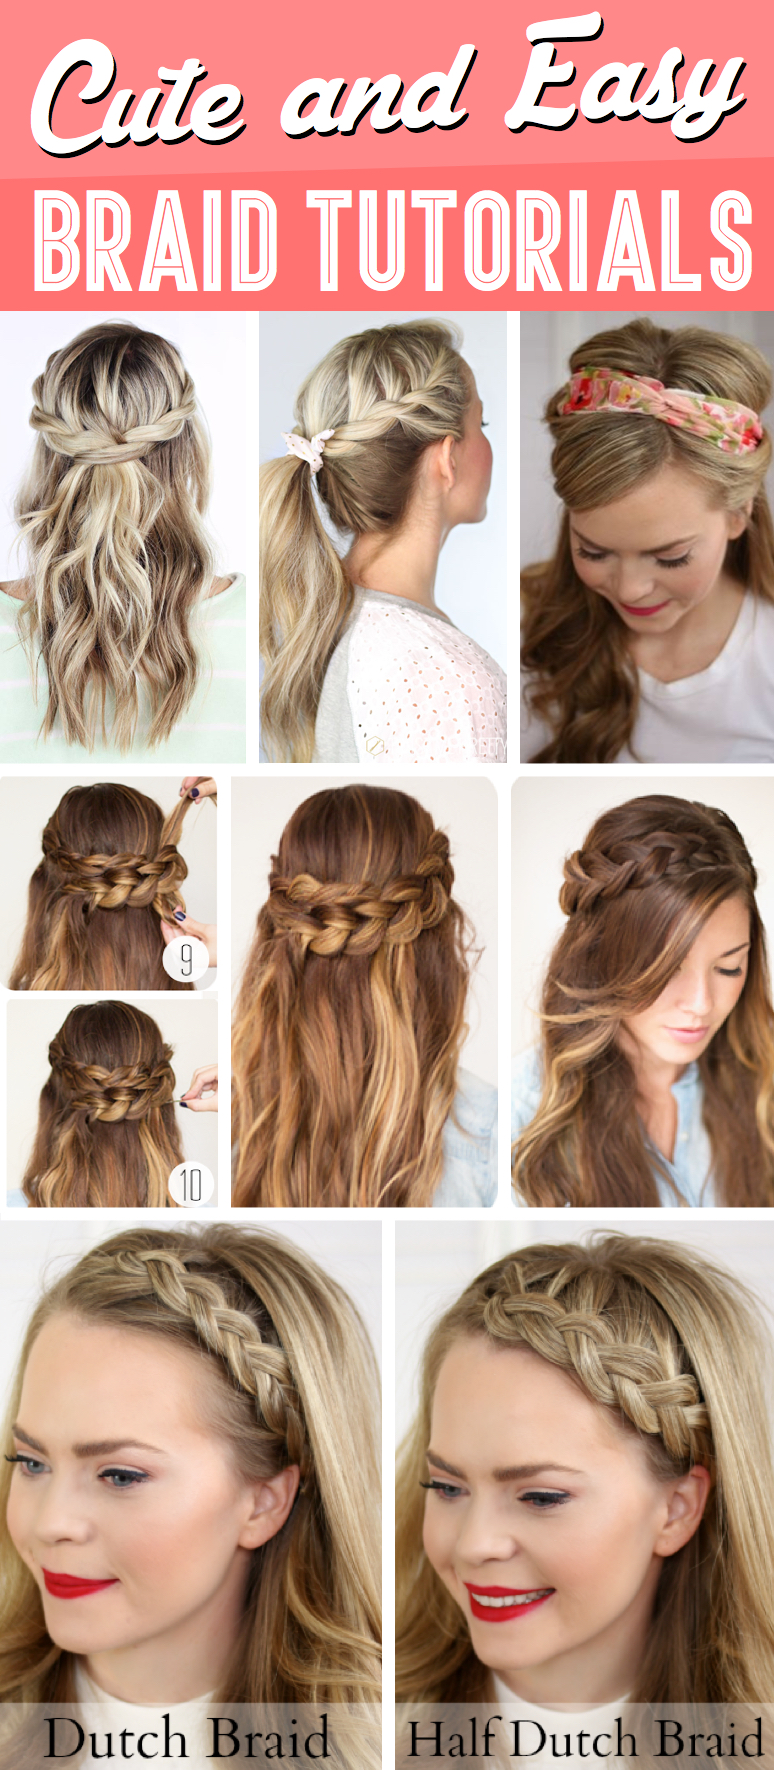 Astonishing 30 Cute And Easy Braid Tutorials That Are Perfect For Any Hairstyle Inspiration Daily Dogsangcom